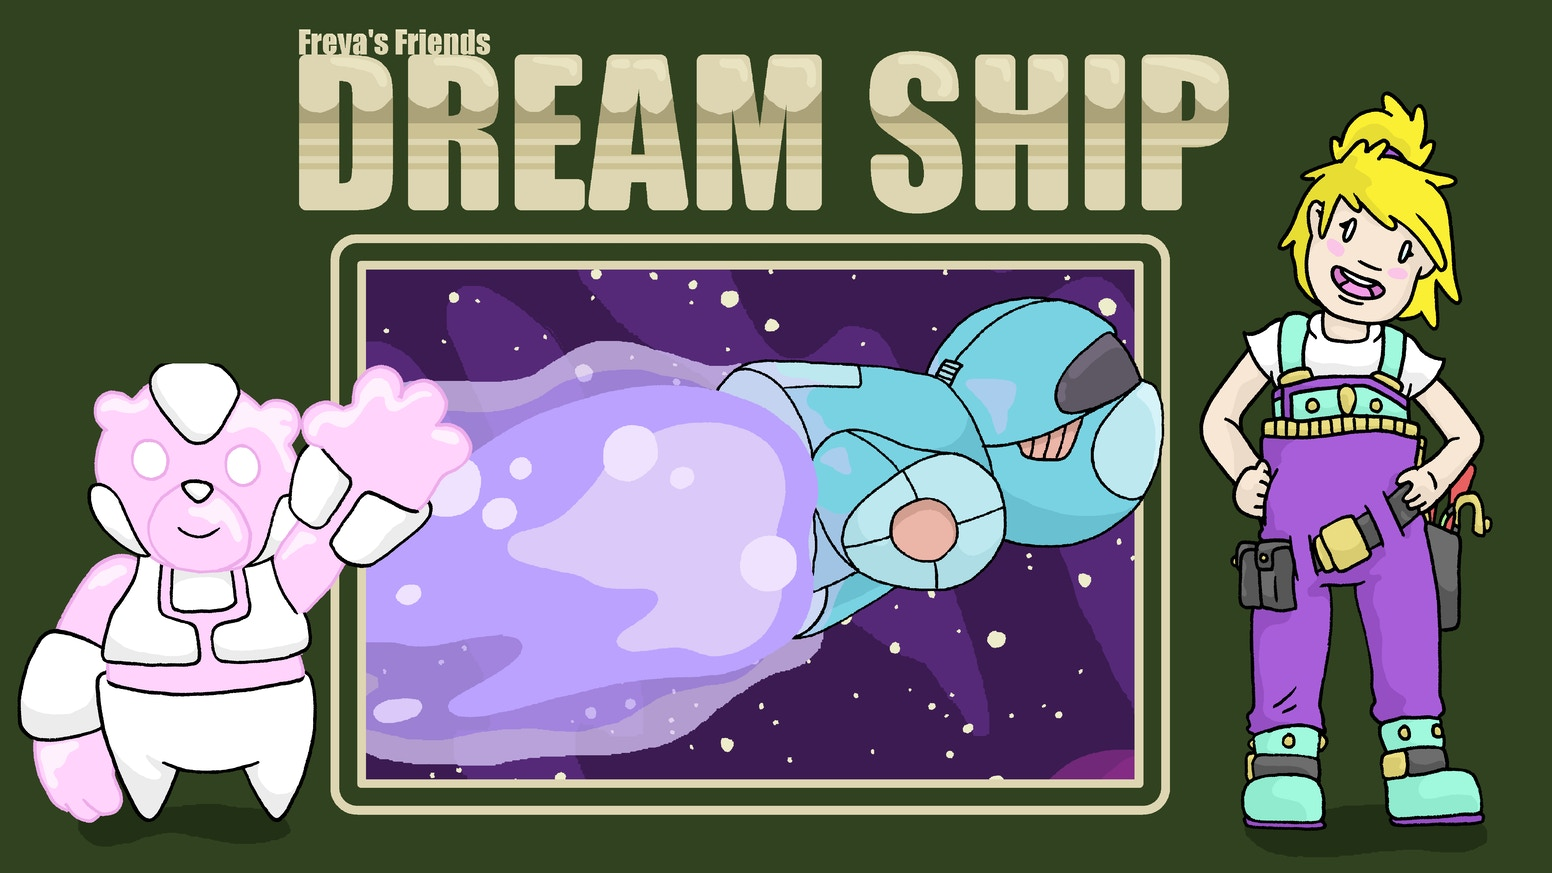 Freya's Friends: Dream Ship Children's Book